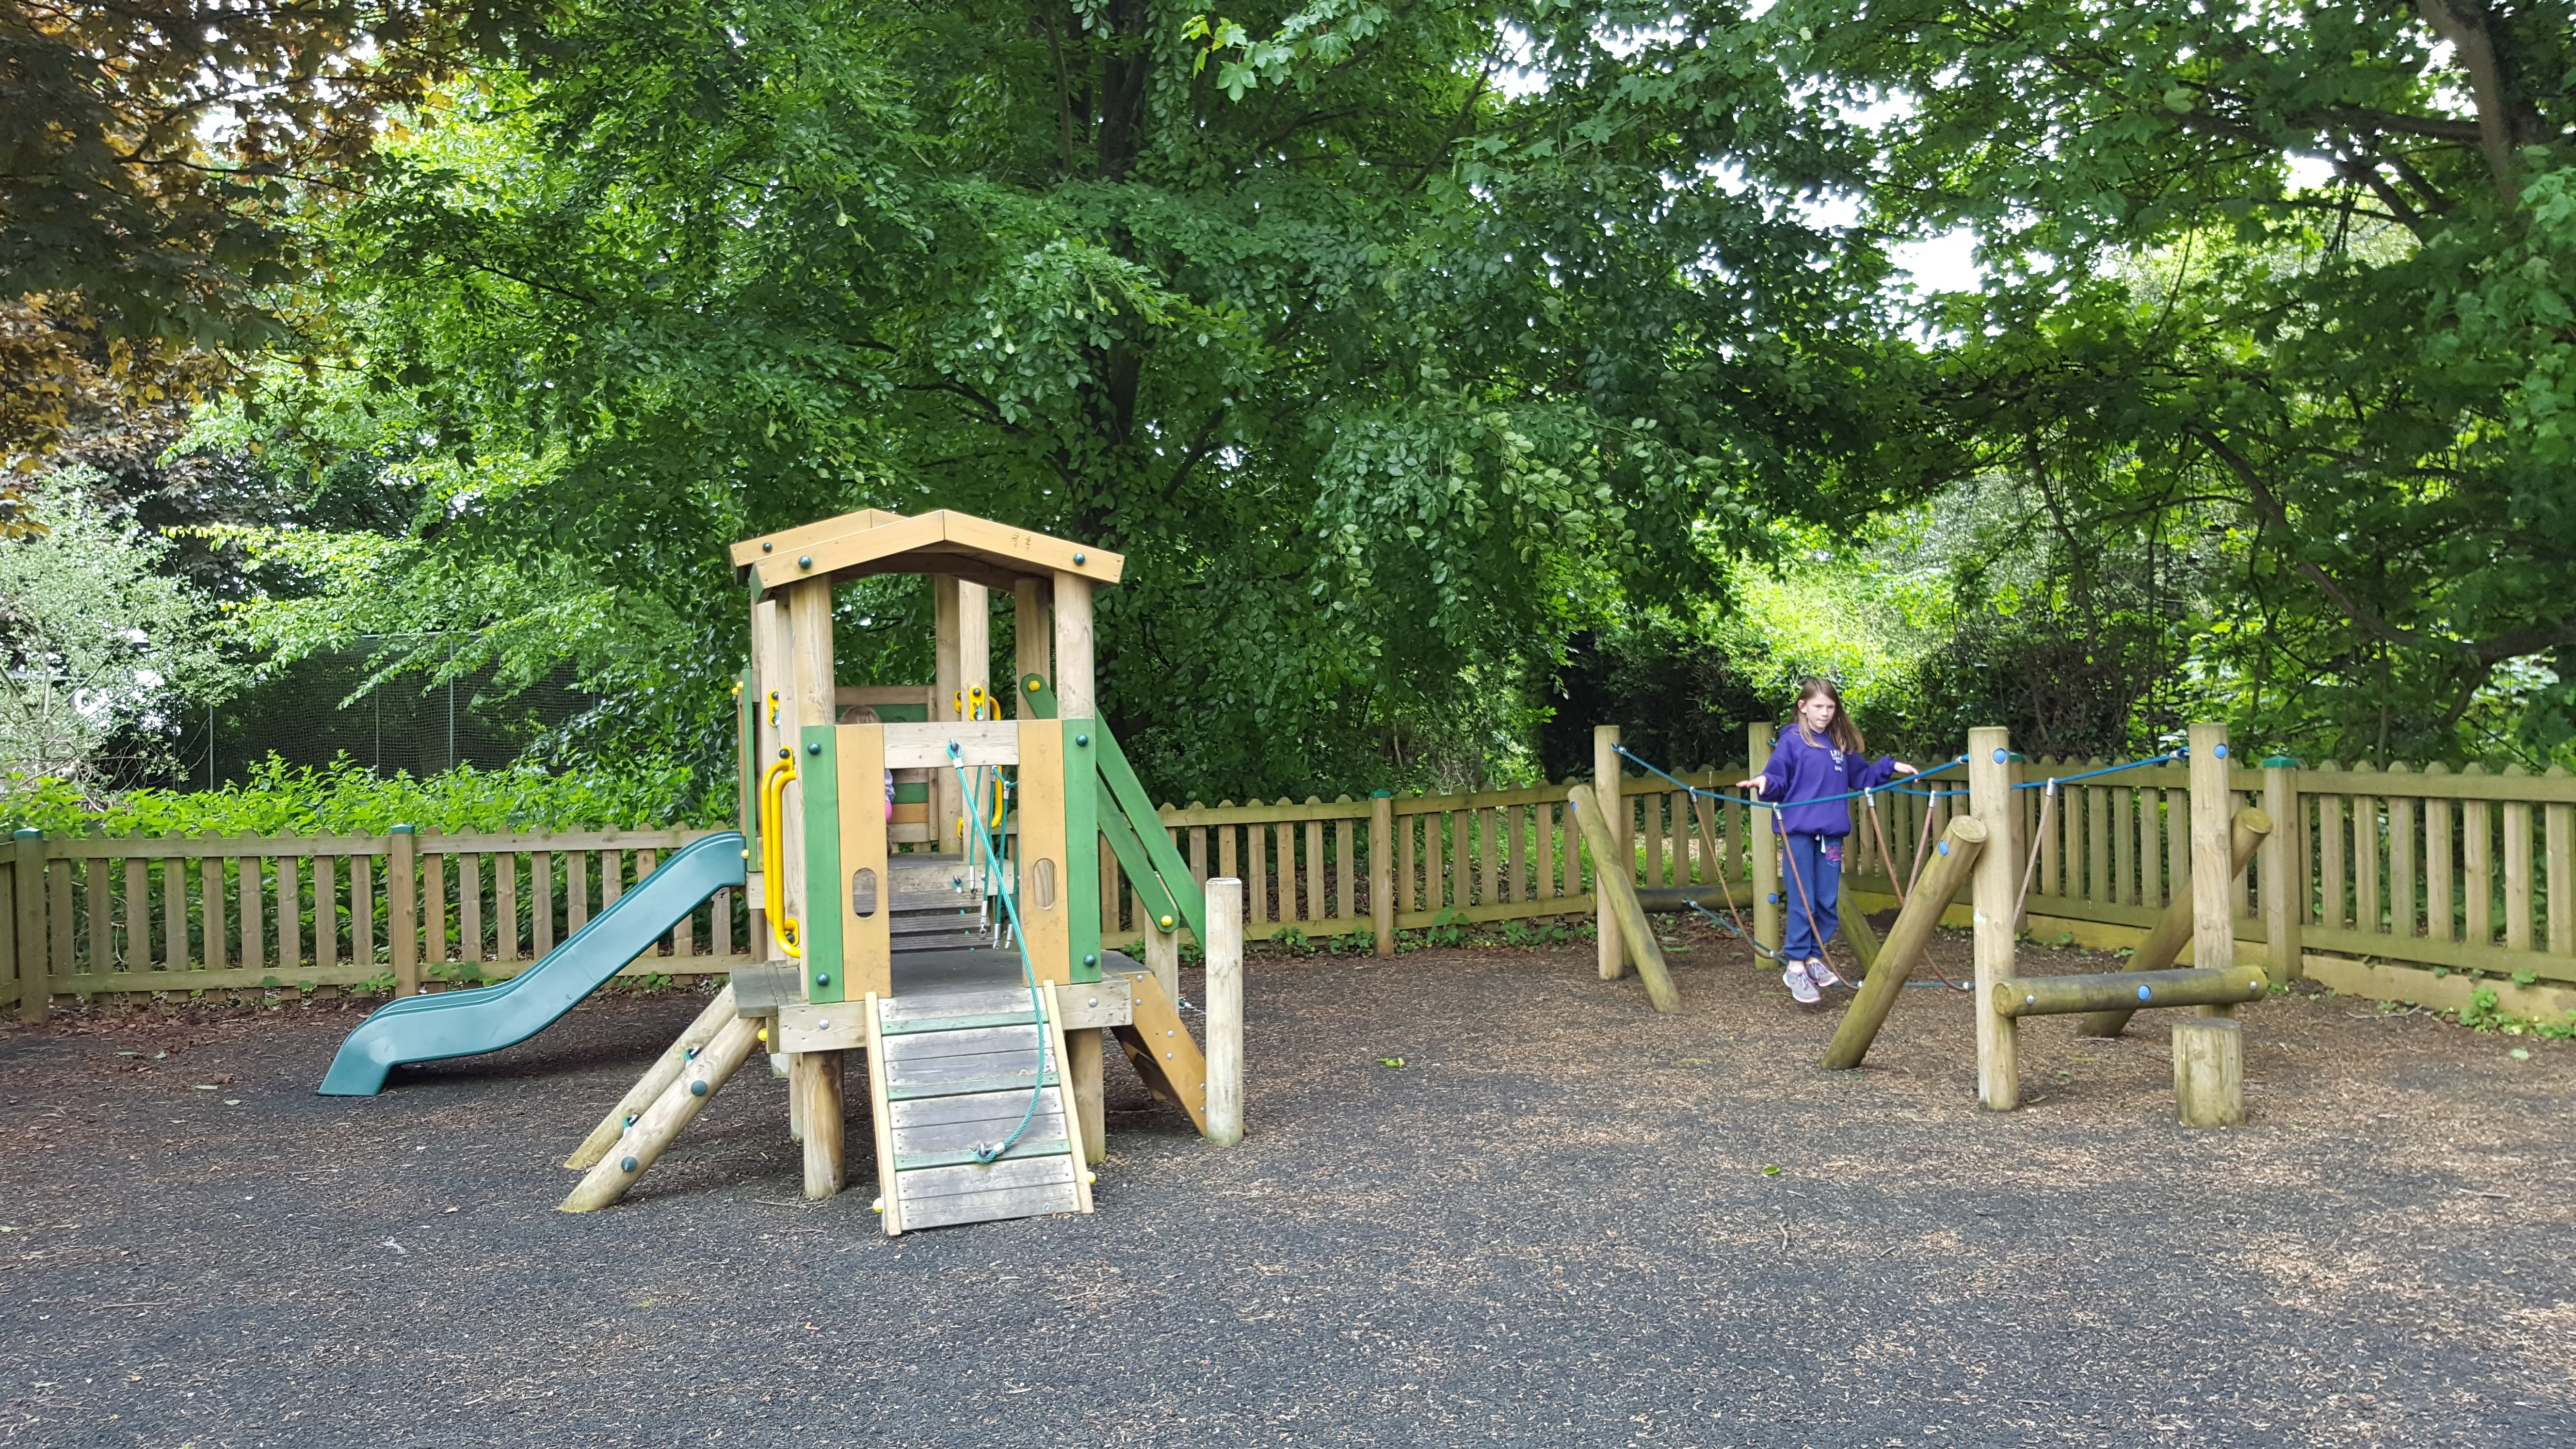 The Aldworth Jubilee Playground